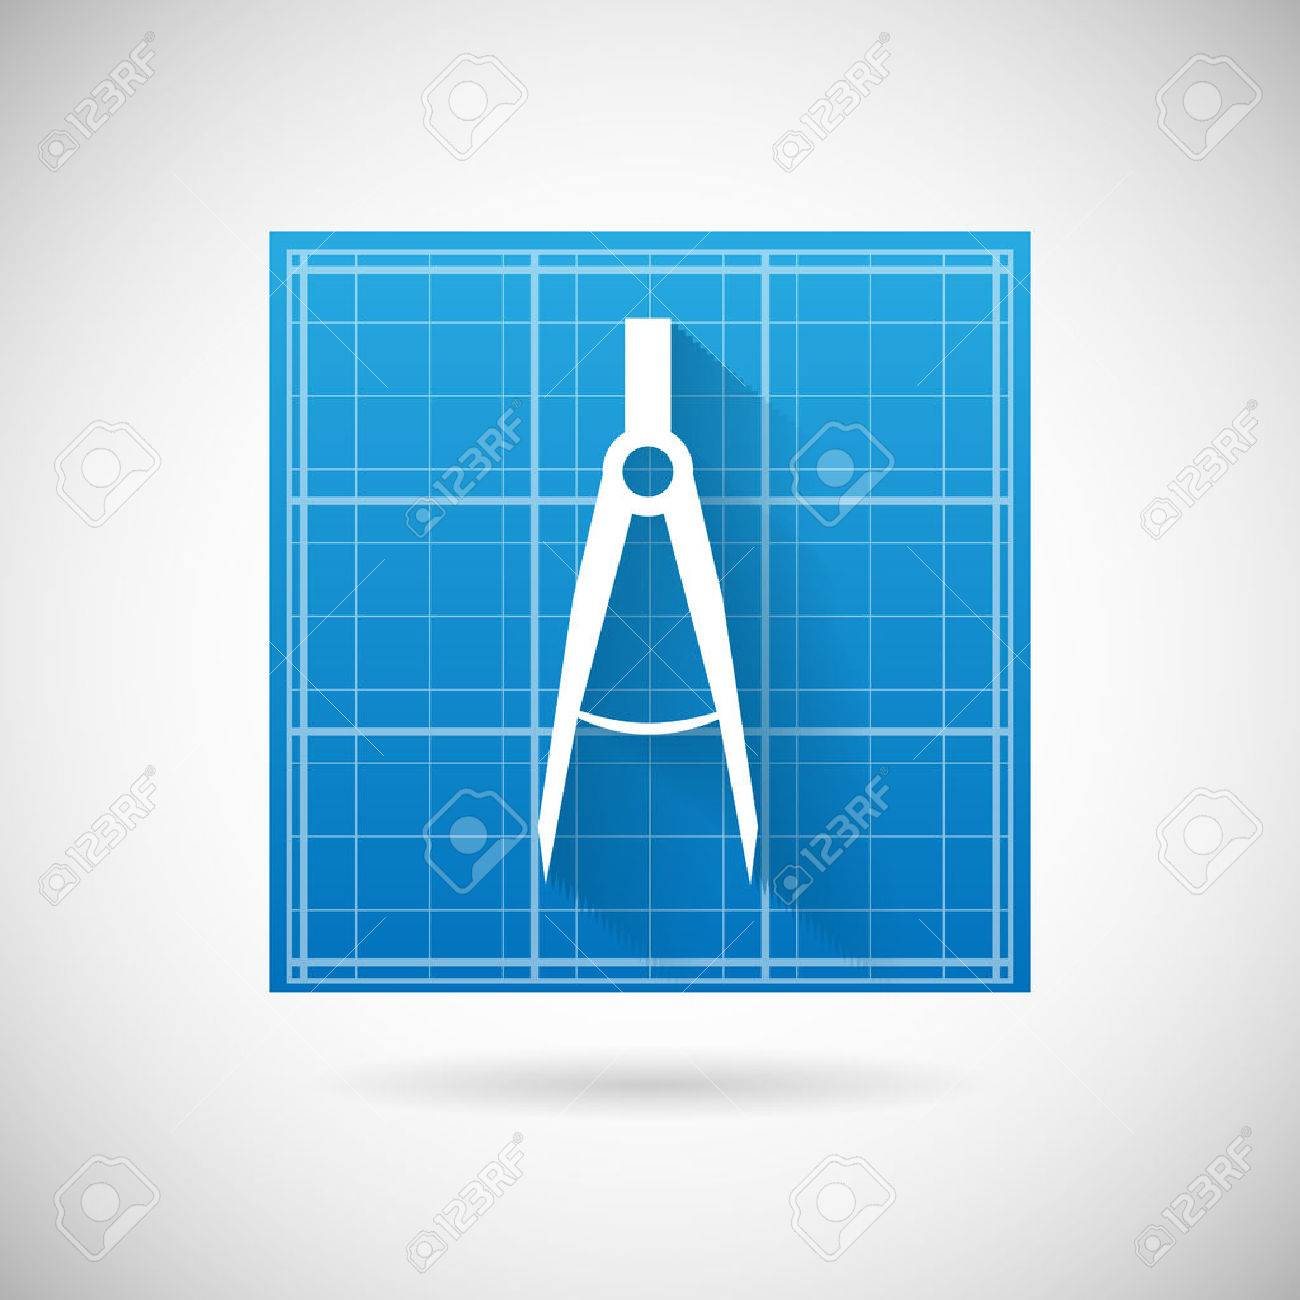 Engineering planning symbol blueprint and compass divider icon engineering planning symbol blueprint and compass divider icon design template vector illustration stock vector 27903759 malvernweather Images